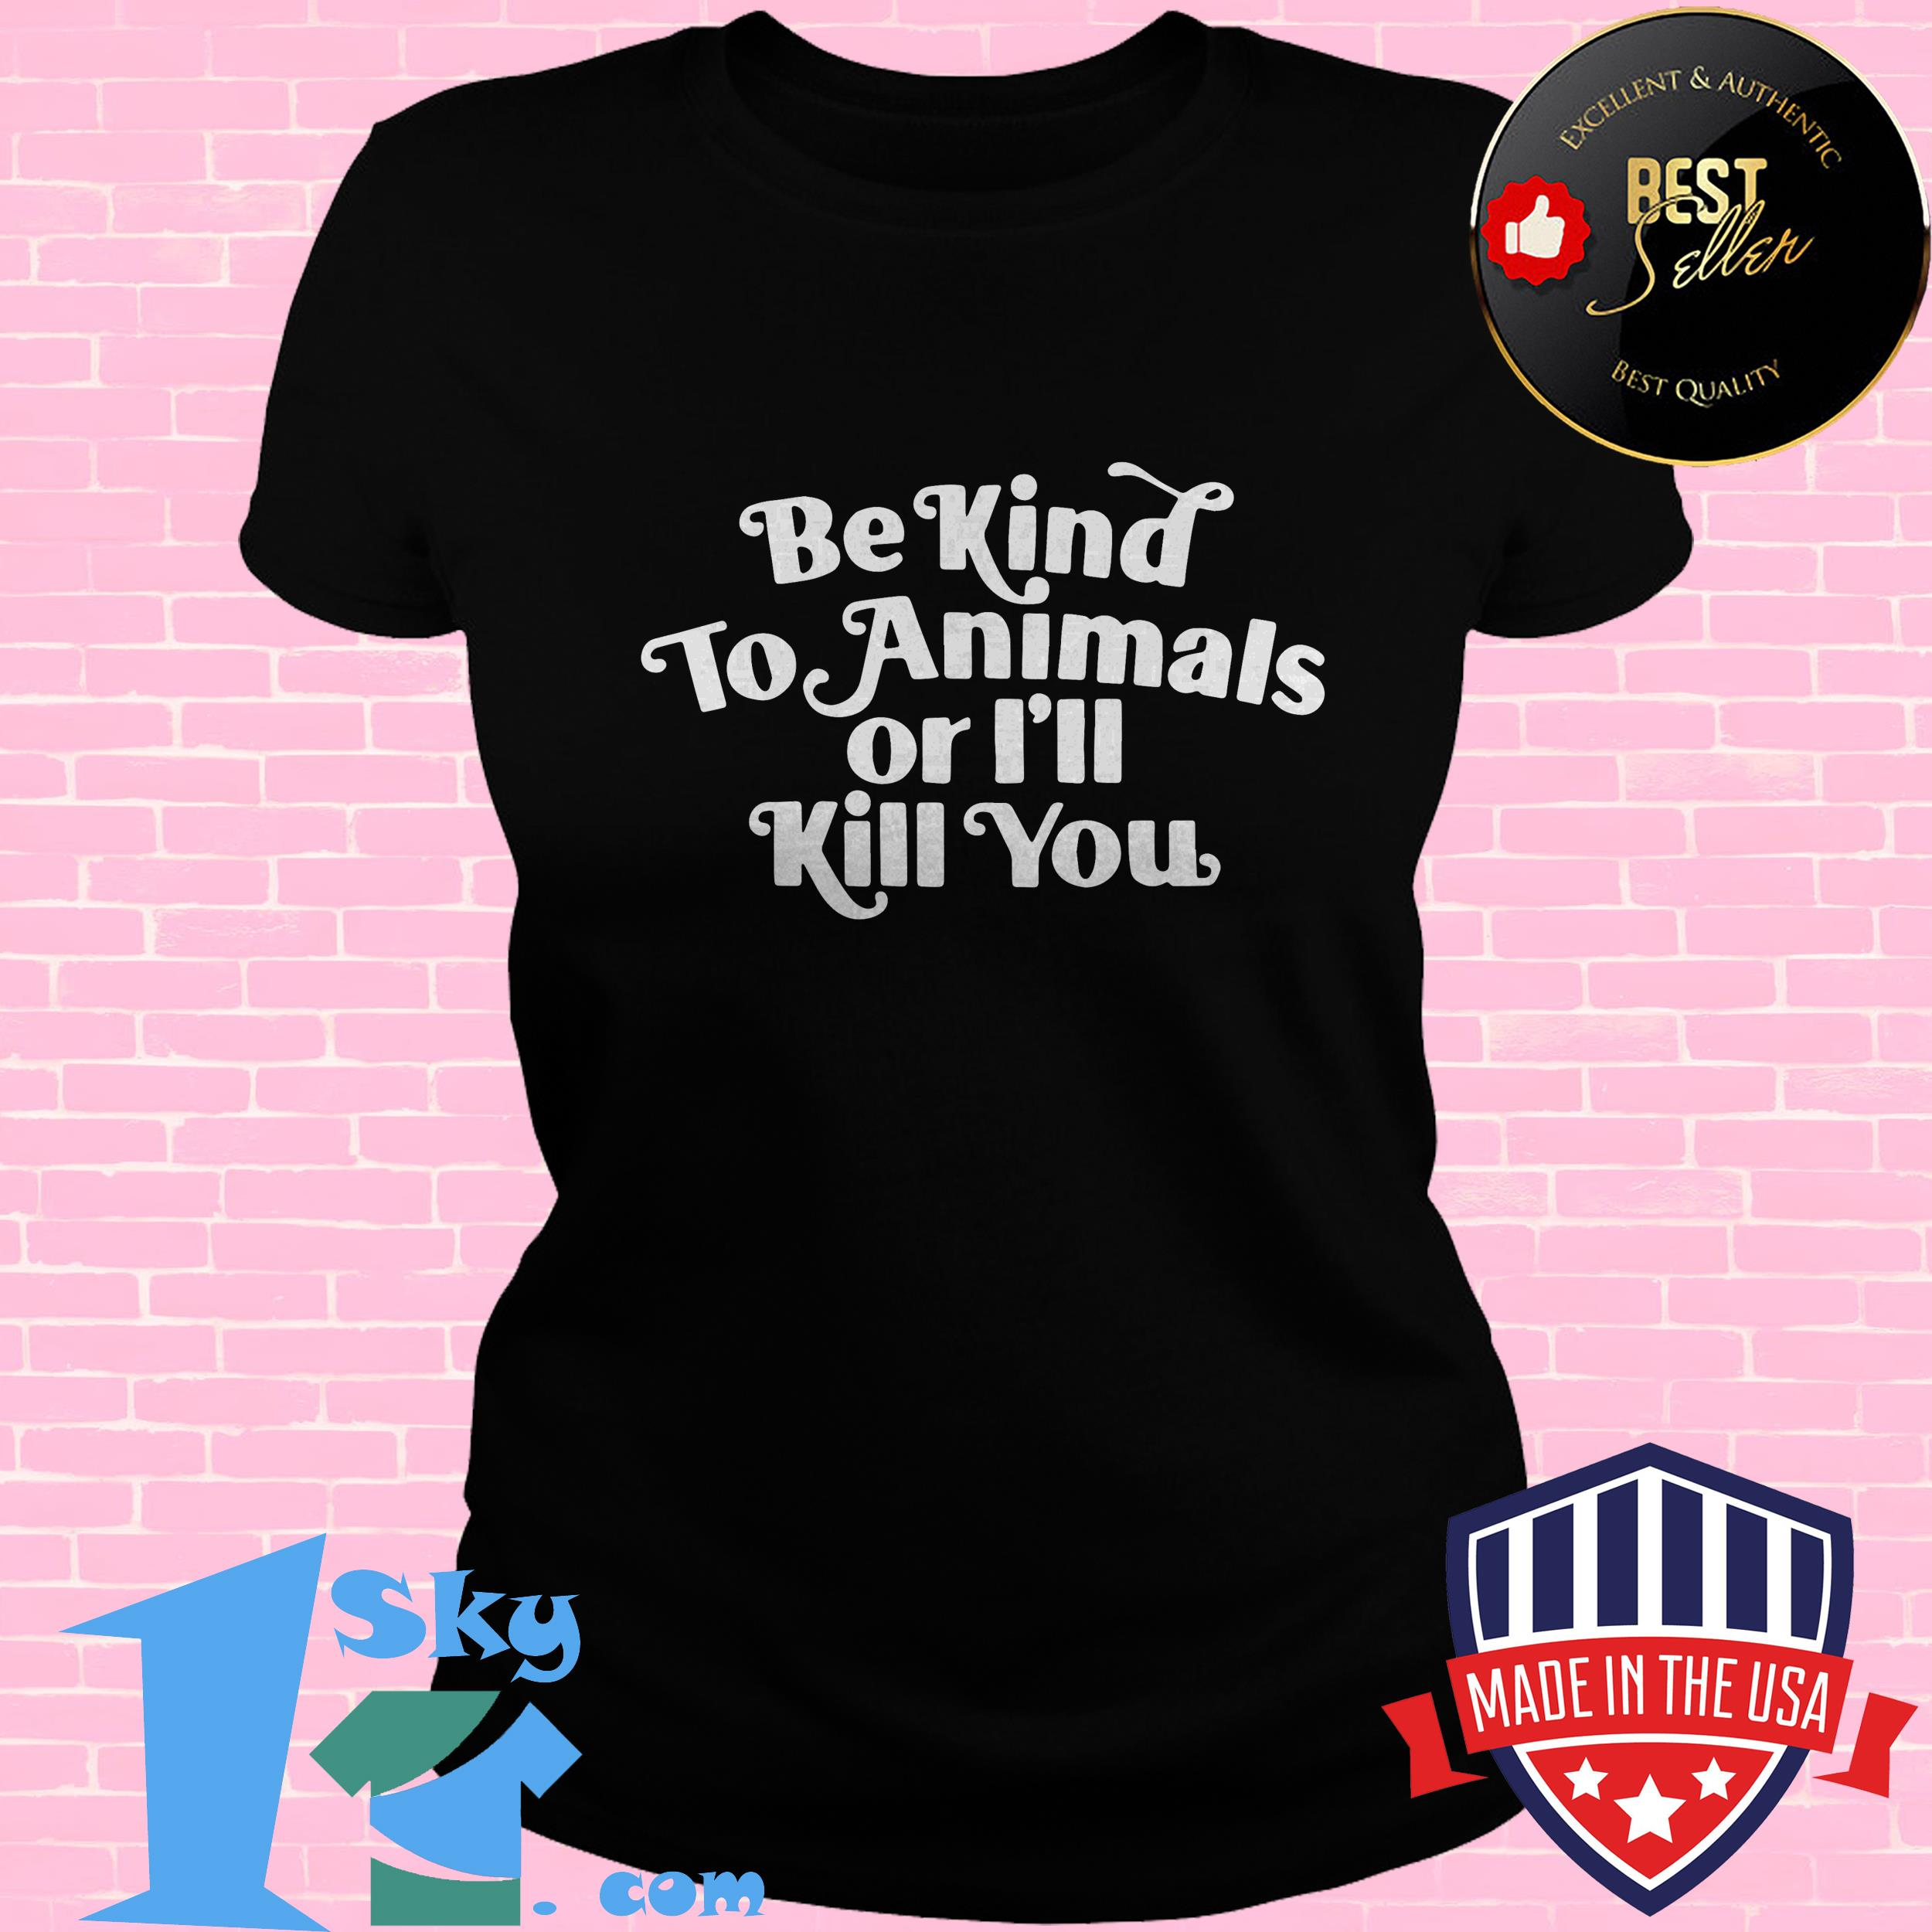 be kind to animal or ill kill you ladies tee - Be Kind To Animal Or I'll Kill You shirt